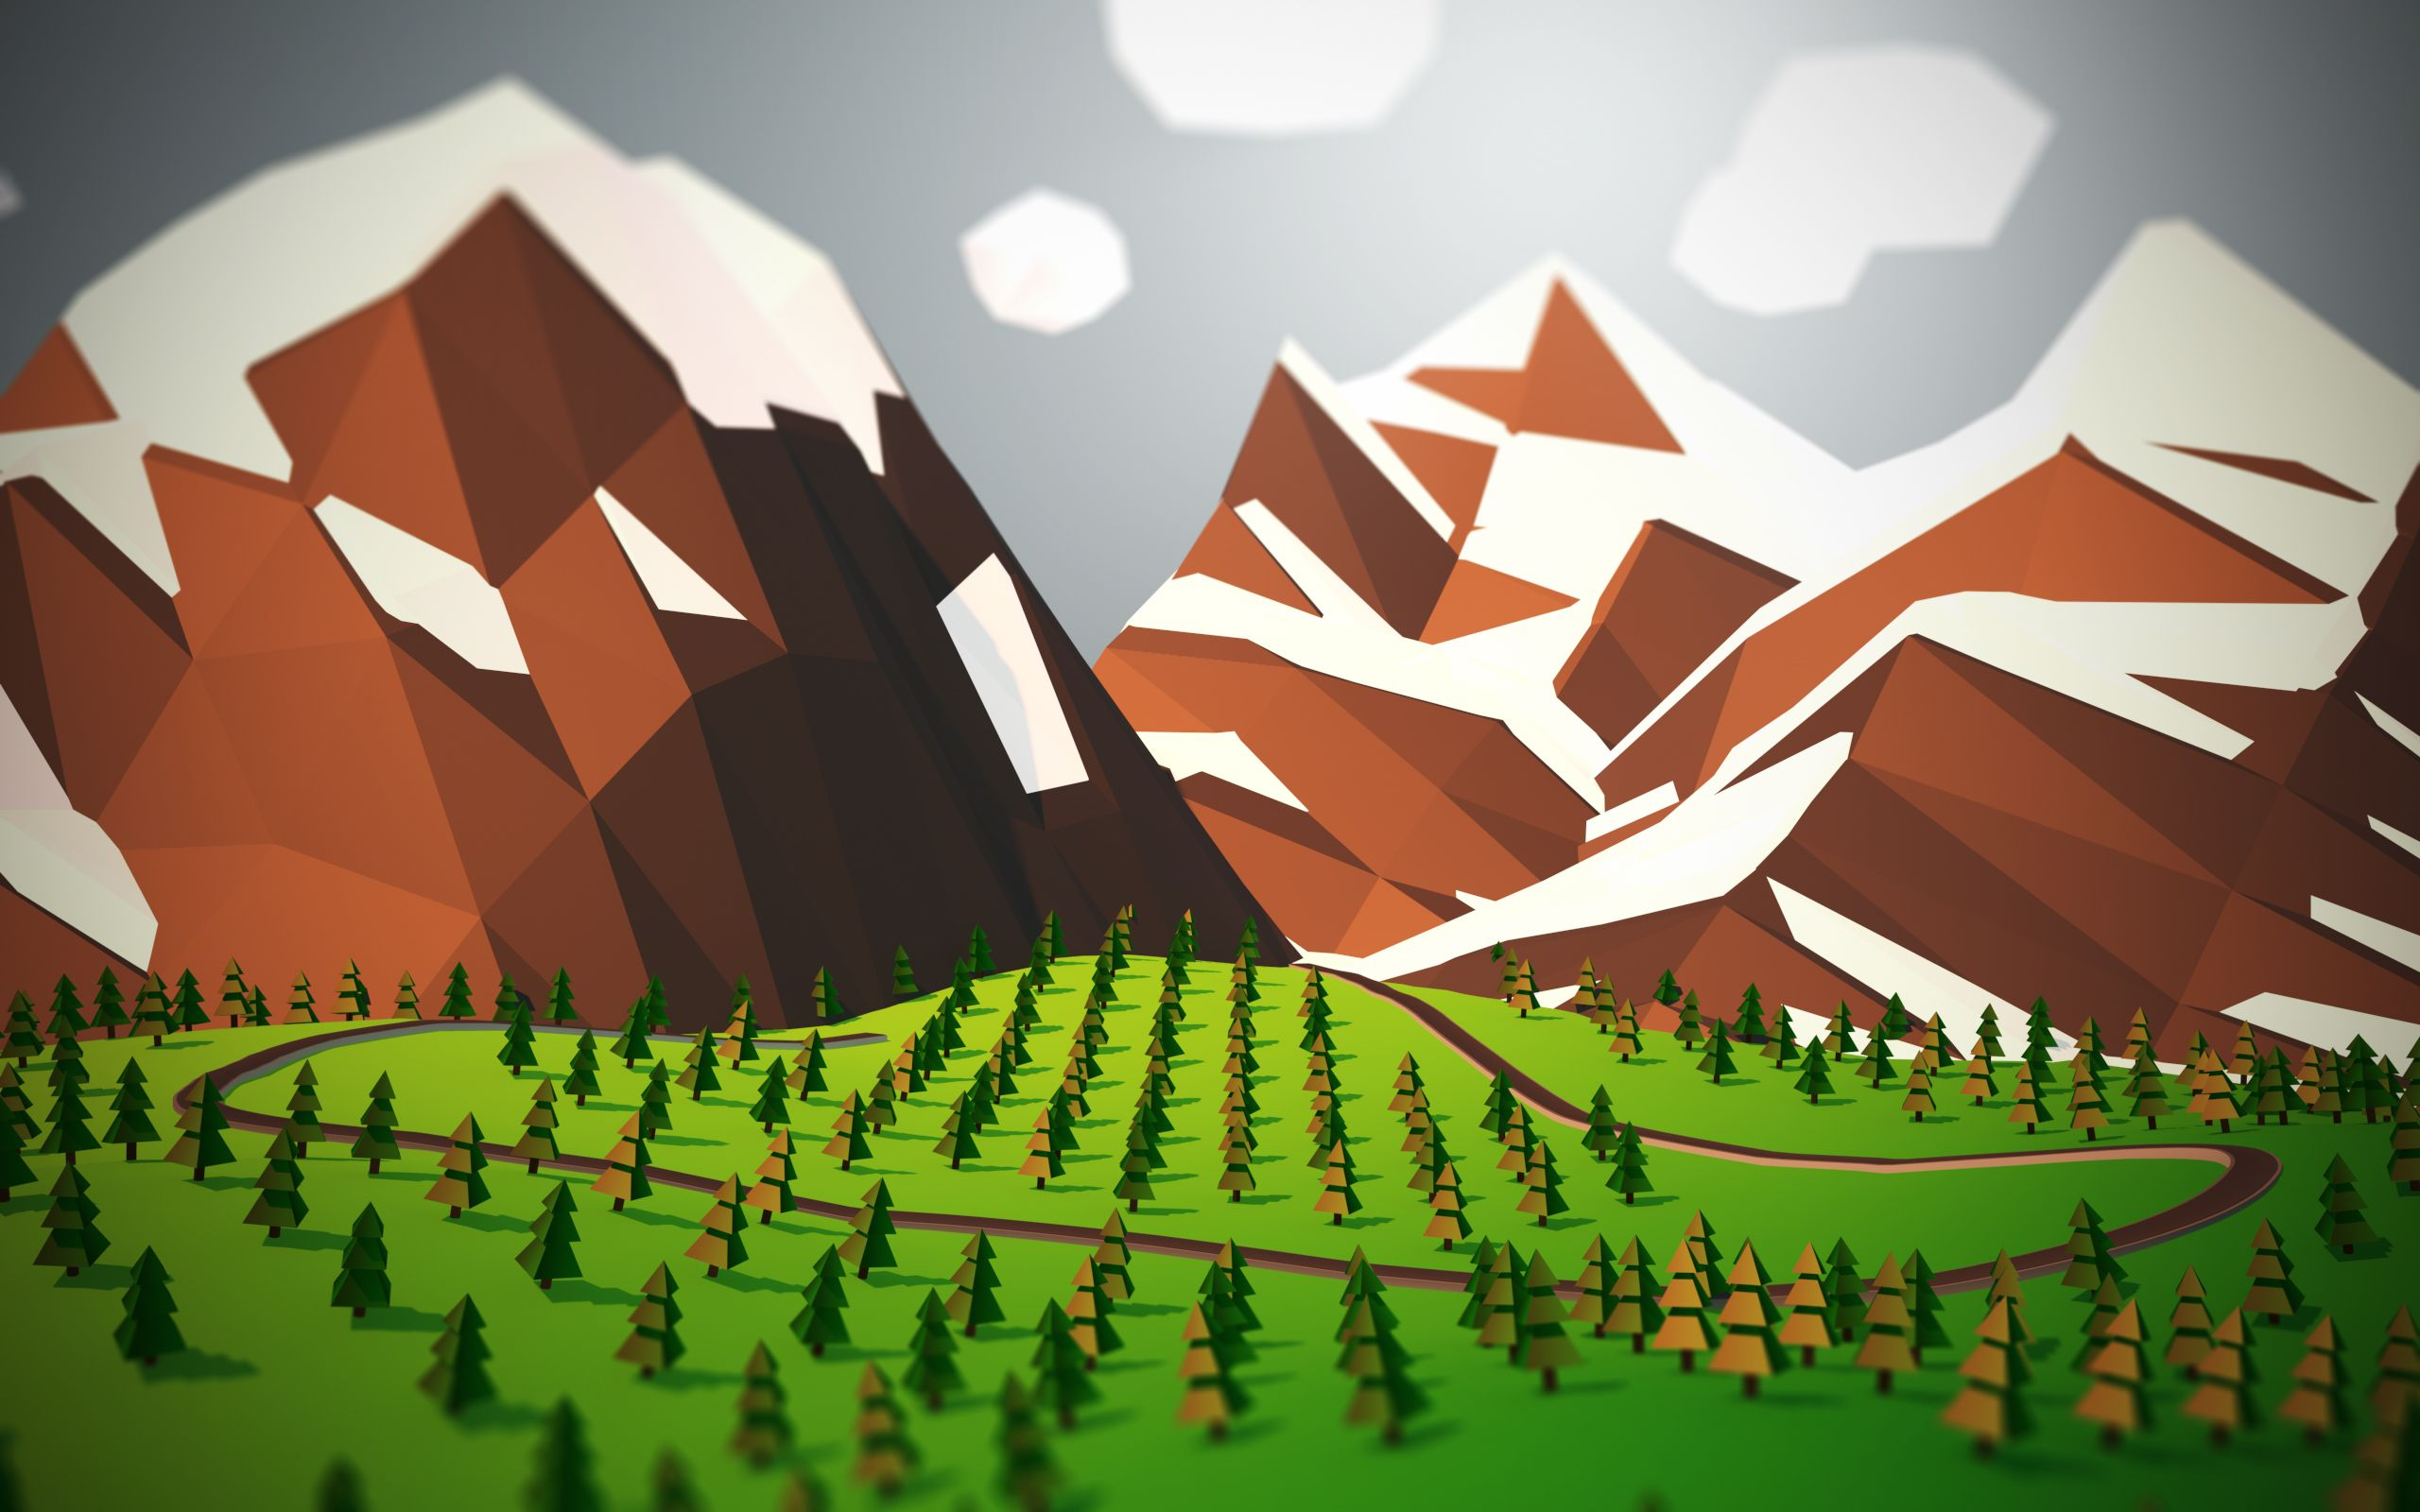 Android wallpaper low poly art for Sfondi material design